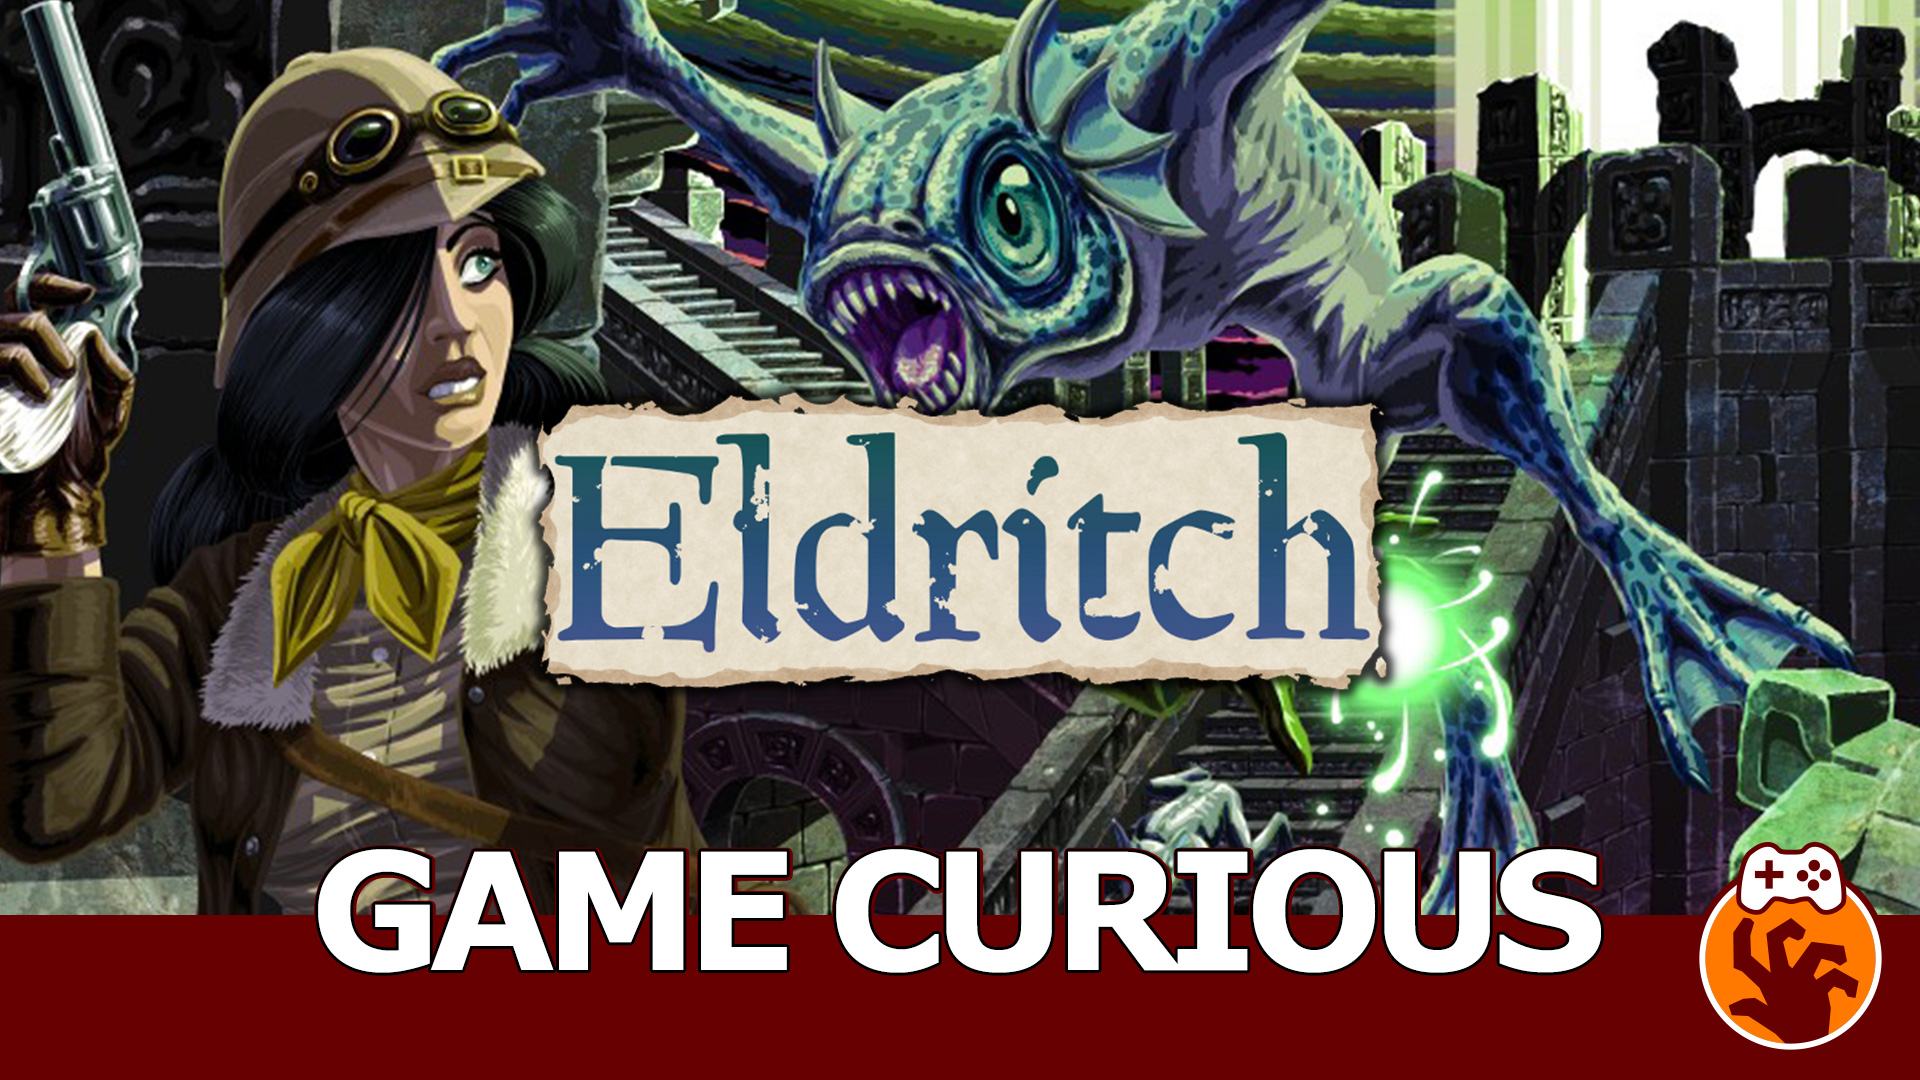 Game Curious – Eldritch: Climb Up to Get Down, If You Want